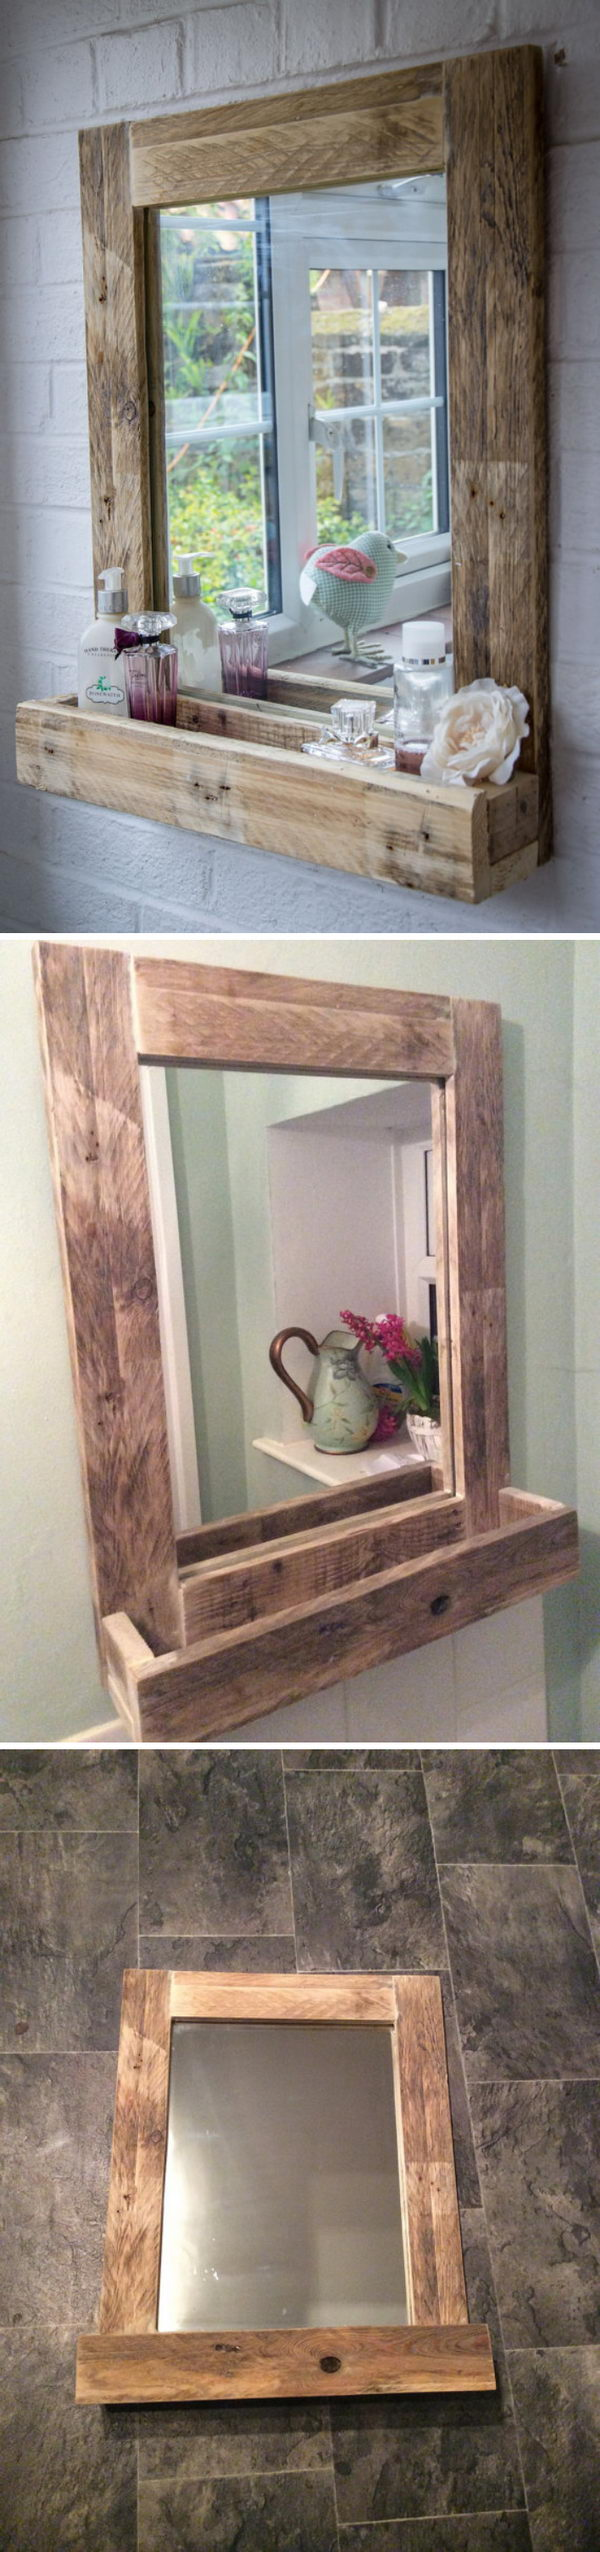 Bathroom Mirror with Storage Shelf.